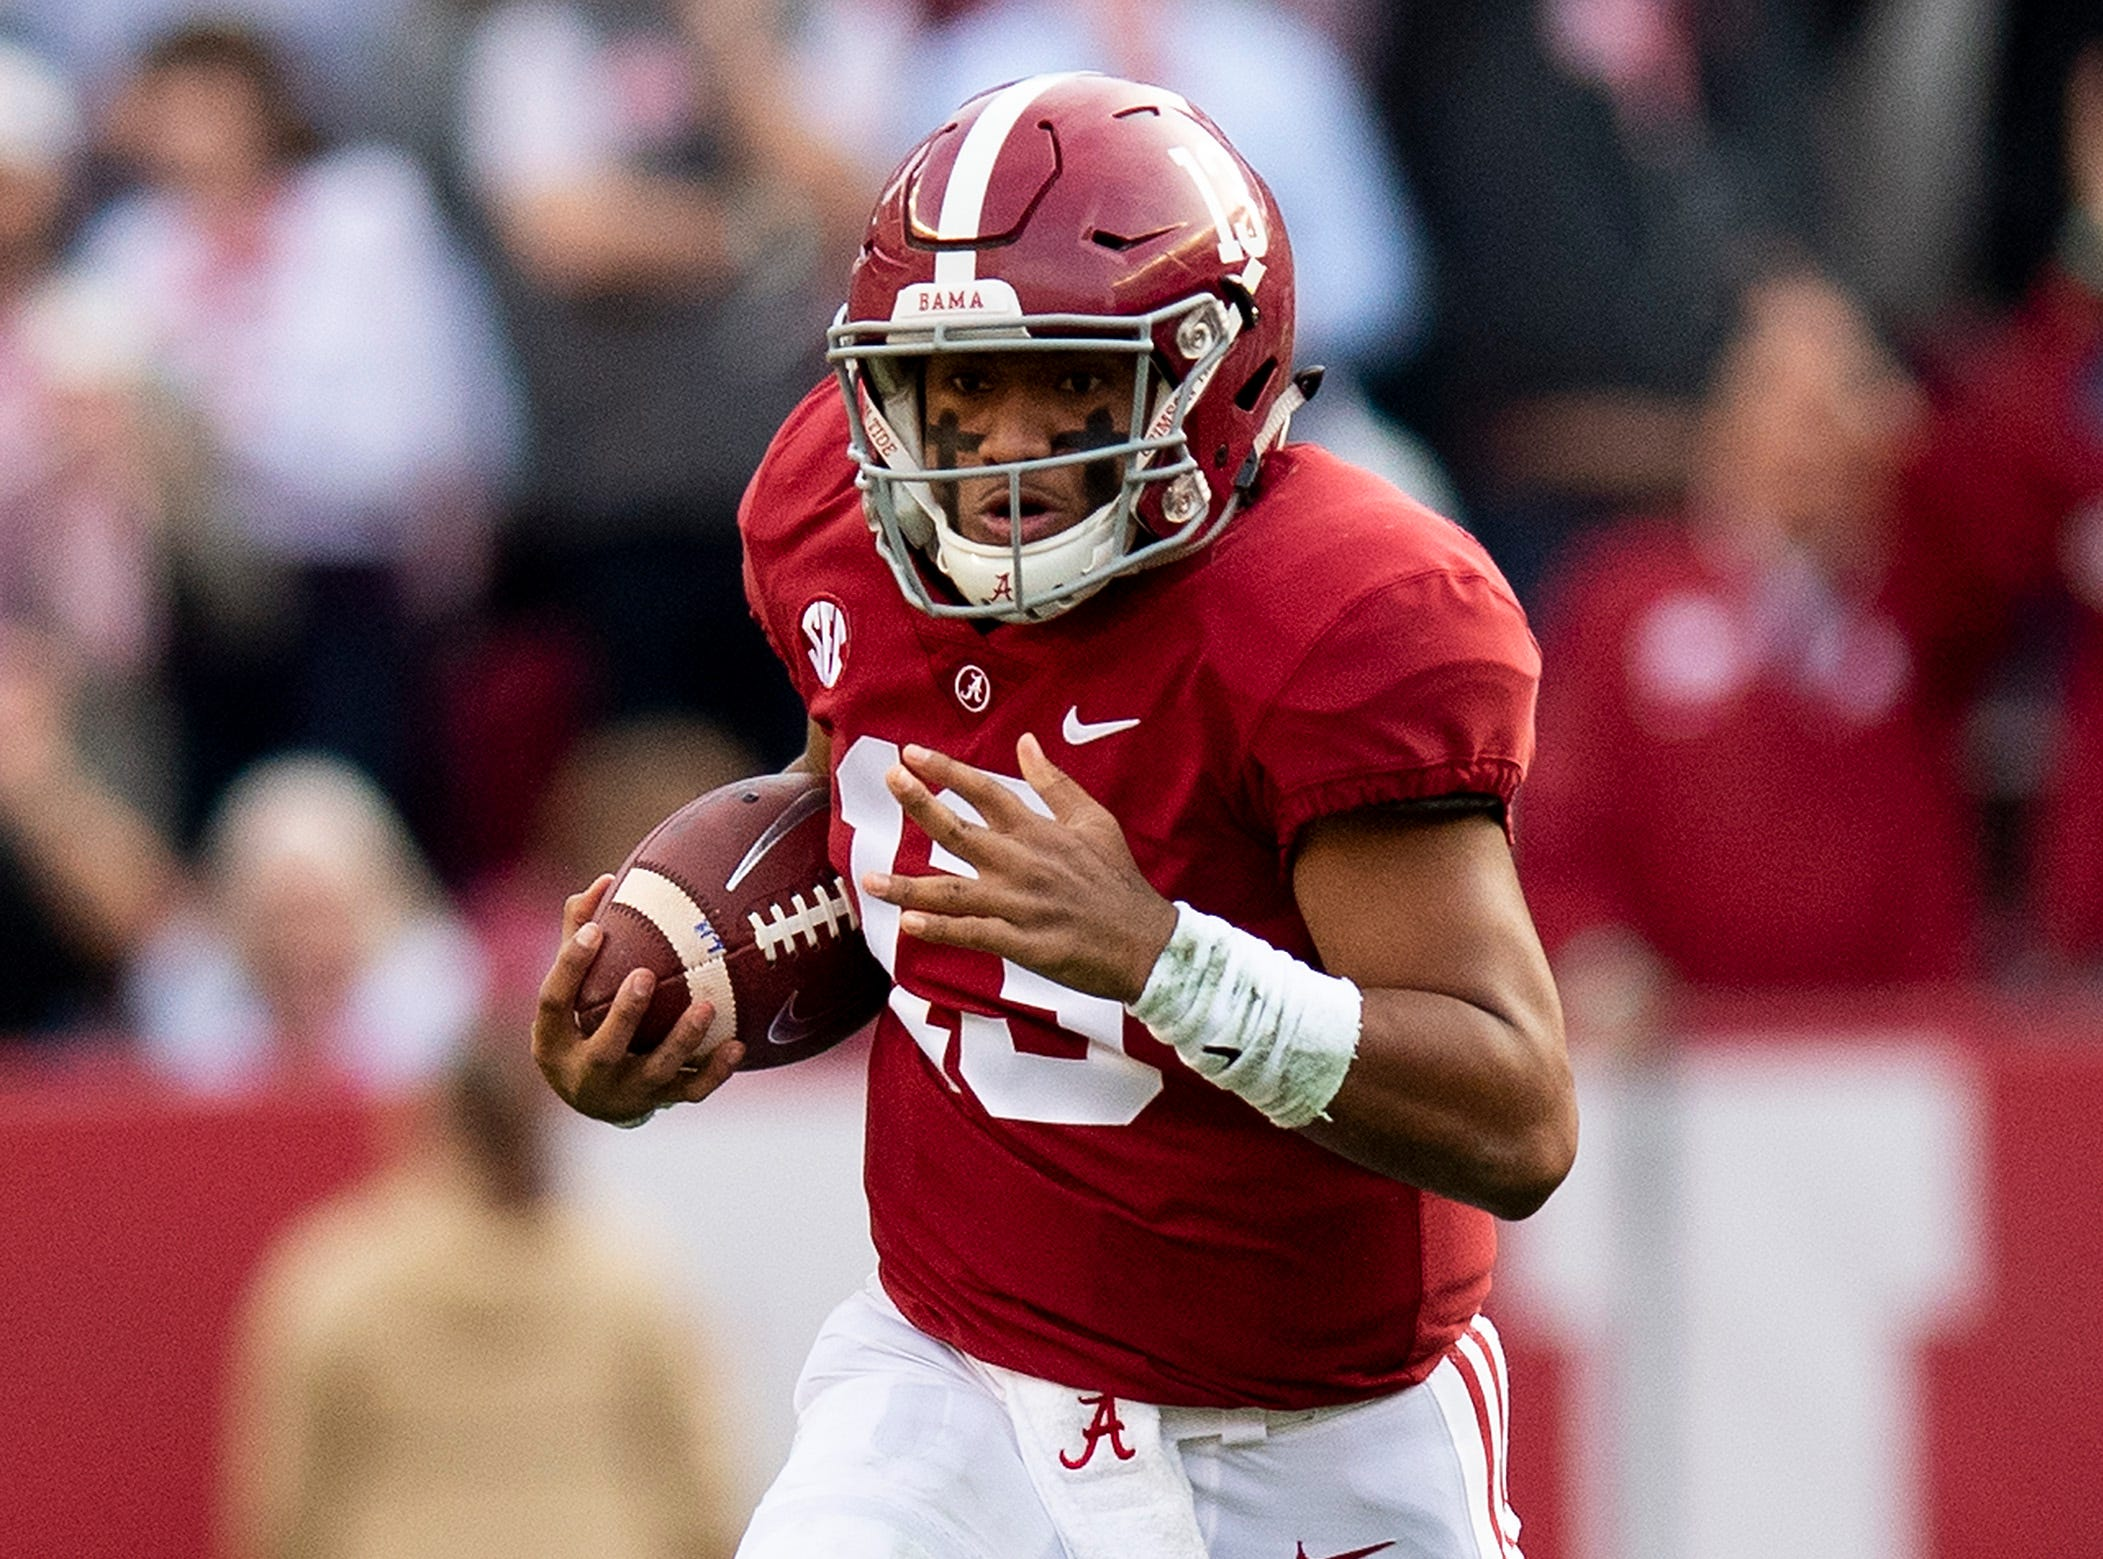 Alabama quarterback Tua Tagovailoa (13) carries the ball in first half action against Auburn during the Iron Bowl at Bryant-Denny Stadium in Tuscaloosa, Ala., on Saturday November 24, 2018.